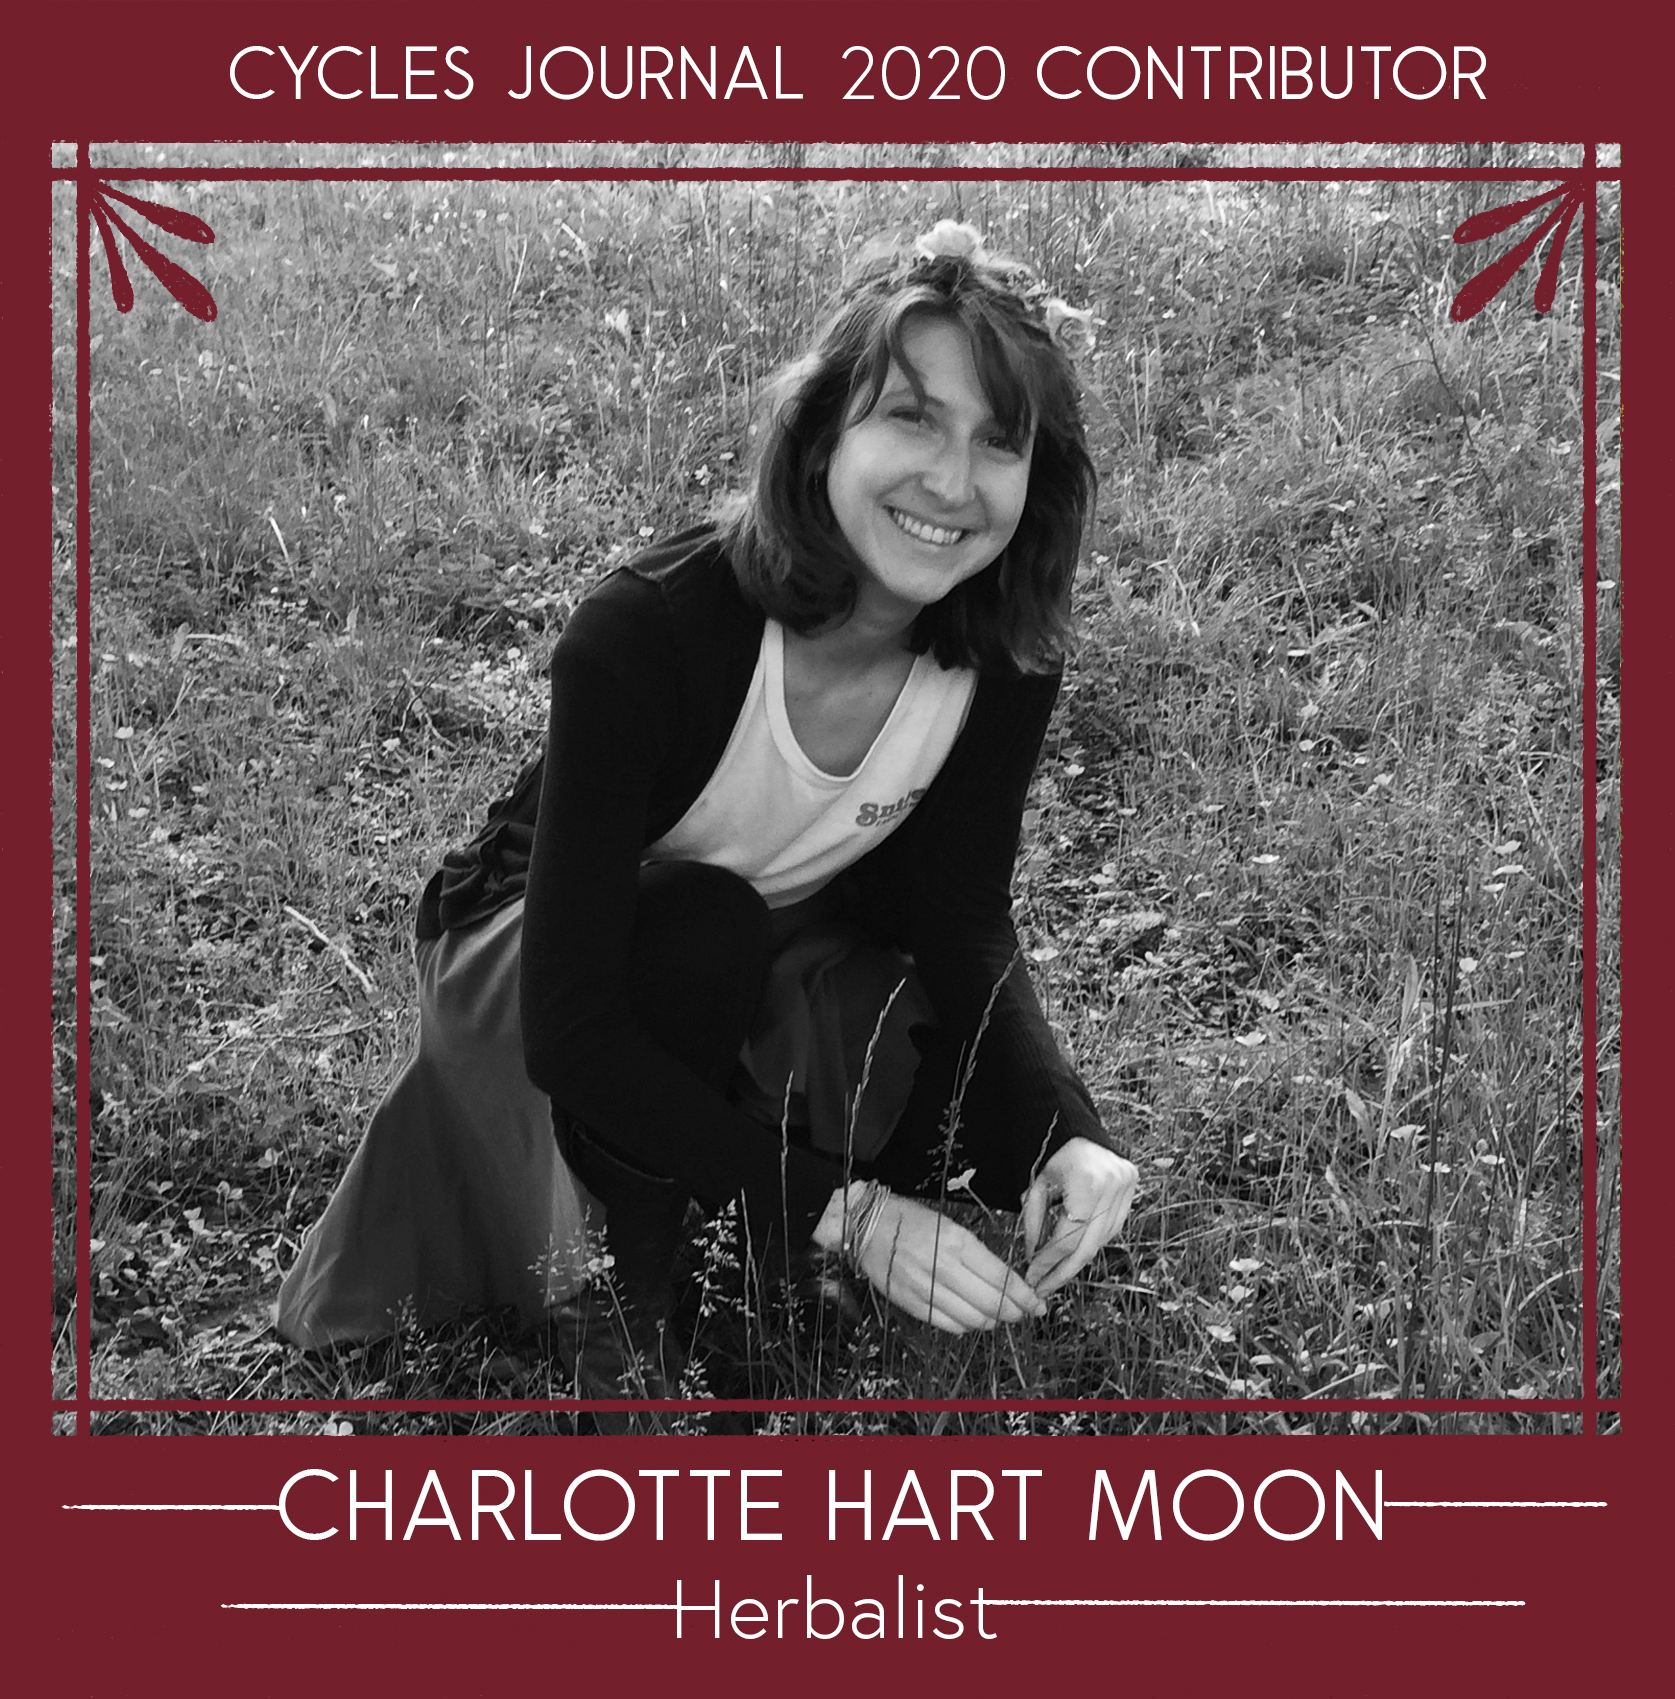 Charlotte Hart Moon - HerbalistCharlotte Snipes-Wells began her herbal journey at the Wildflower School of Botanical Medicine, in Austin Texas. In 2018, Charlotte studied under both 7Song at The Northeast School of Botanical Medicine - intensive program, and Tammi Sweet & Kris Miller at Heartstone Center for Earth Essentials. In 2019 she continued learning under Kenton Cobb's Grassroots Herbalism Intensive Program. Taking these courses gained her a comprehensive understanding of herbal medicine in clinical, spiritual, activist and community centered approaches. Currently, Charlotte is a community clinical herbalist, and is learning to grow a medicine garden.Instagram @heart.of.the.moon.herbsEmail: heartofthemoonherbs (@) gmail.com